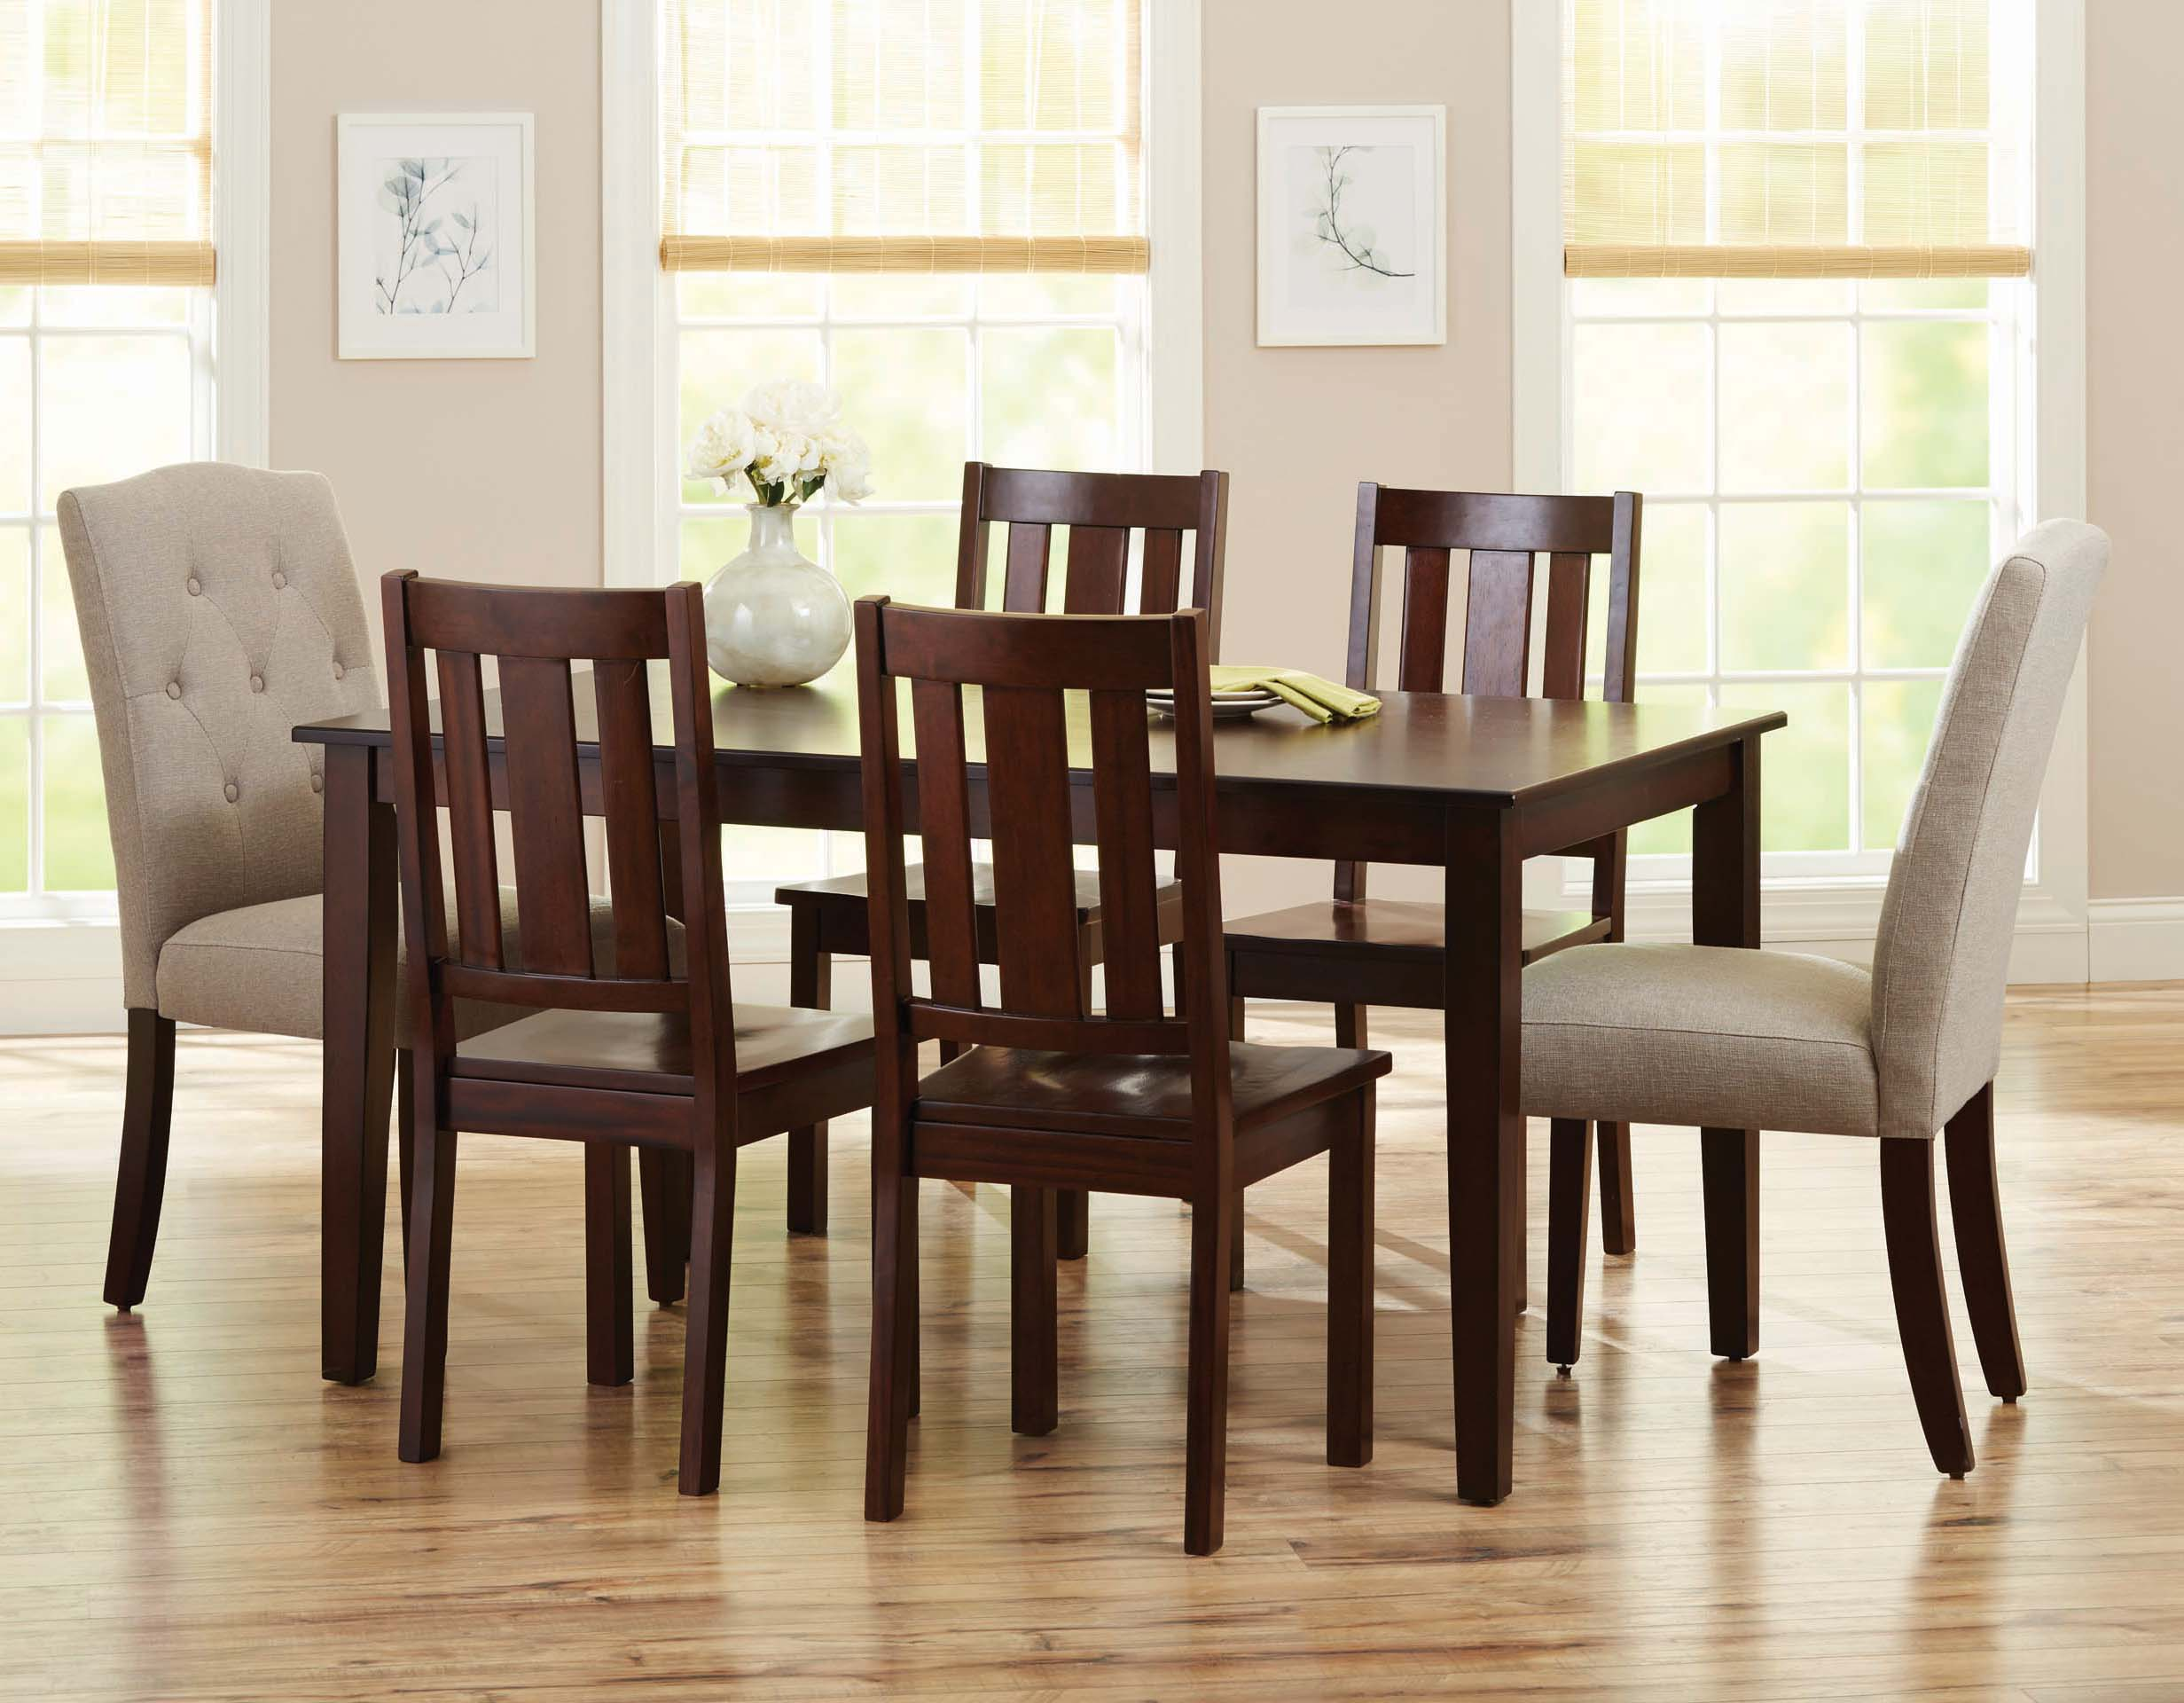 Shop The Collection. Better Homes And Gardens Bankston Dining Table ...